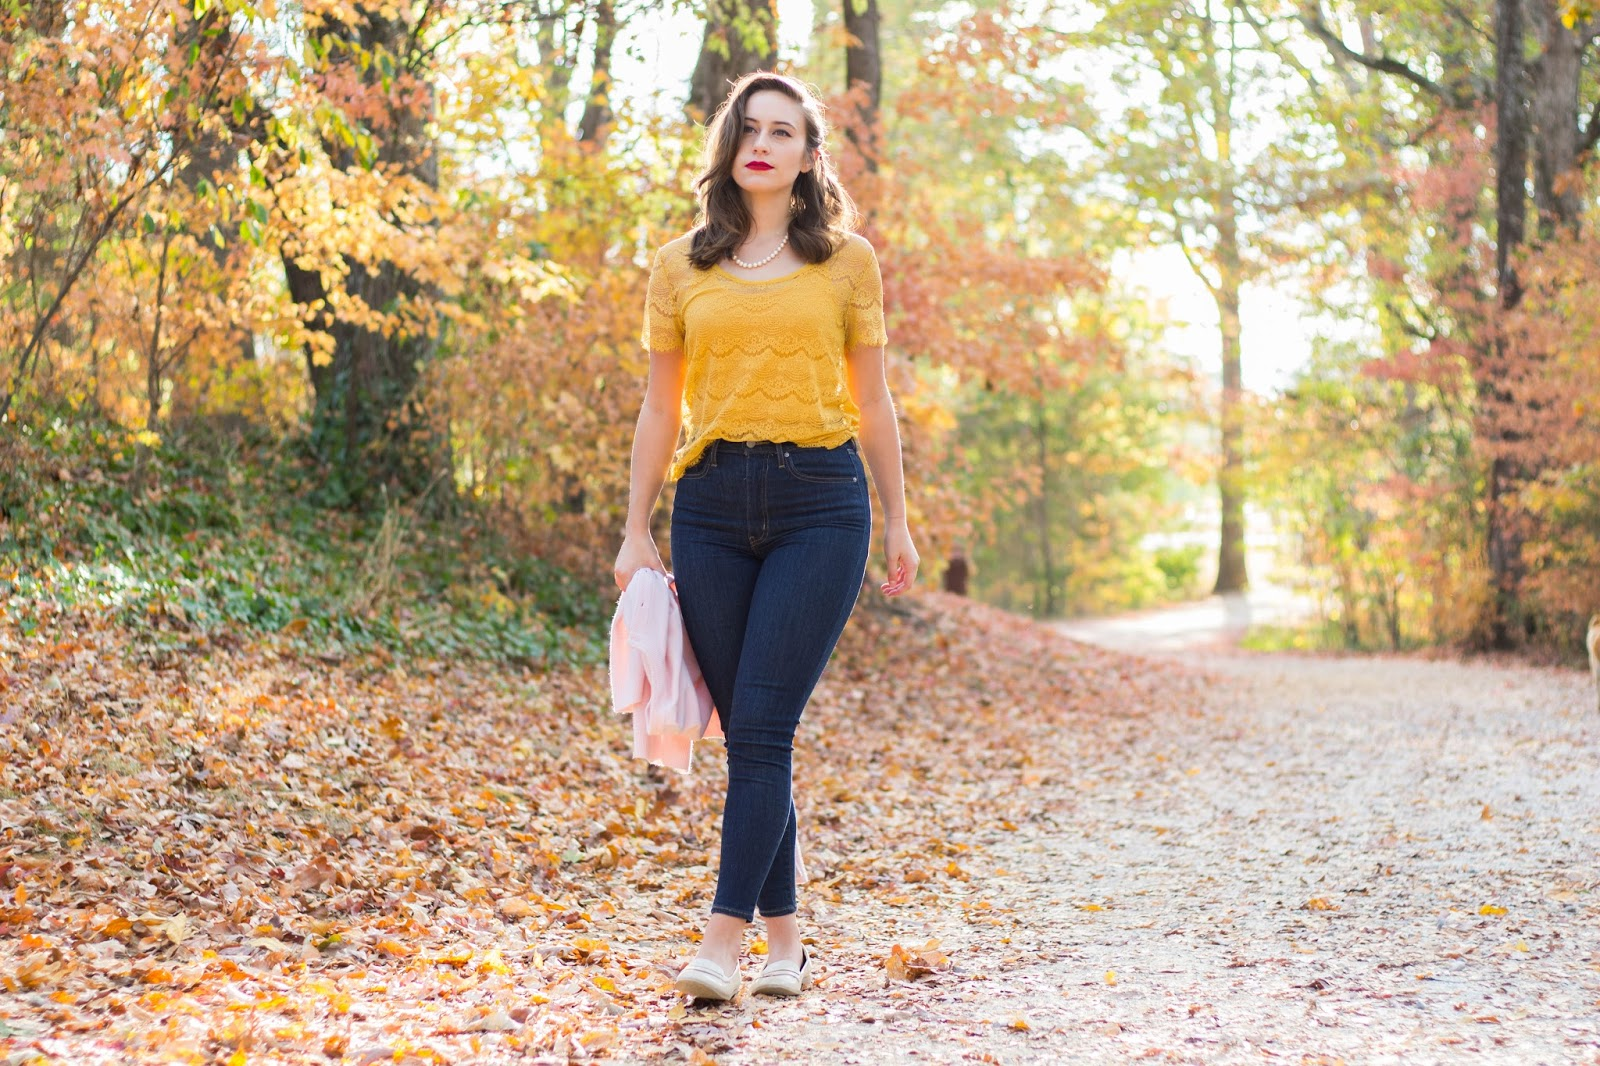 classic style, fall style, fall outfit, vintage style, levis, high waisted jeans, mile high jeans, fossil lace top, forever 21 loafers, classic makeup, old hollywood style, hollywood glamour makeup and hair, fashion